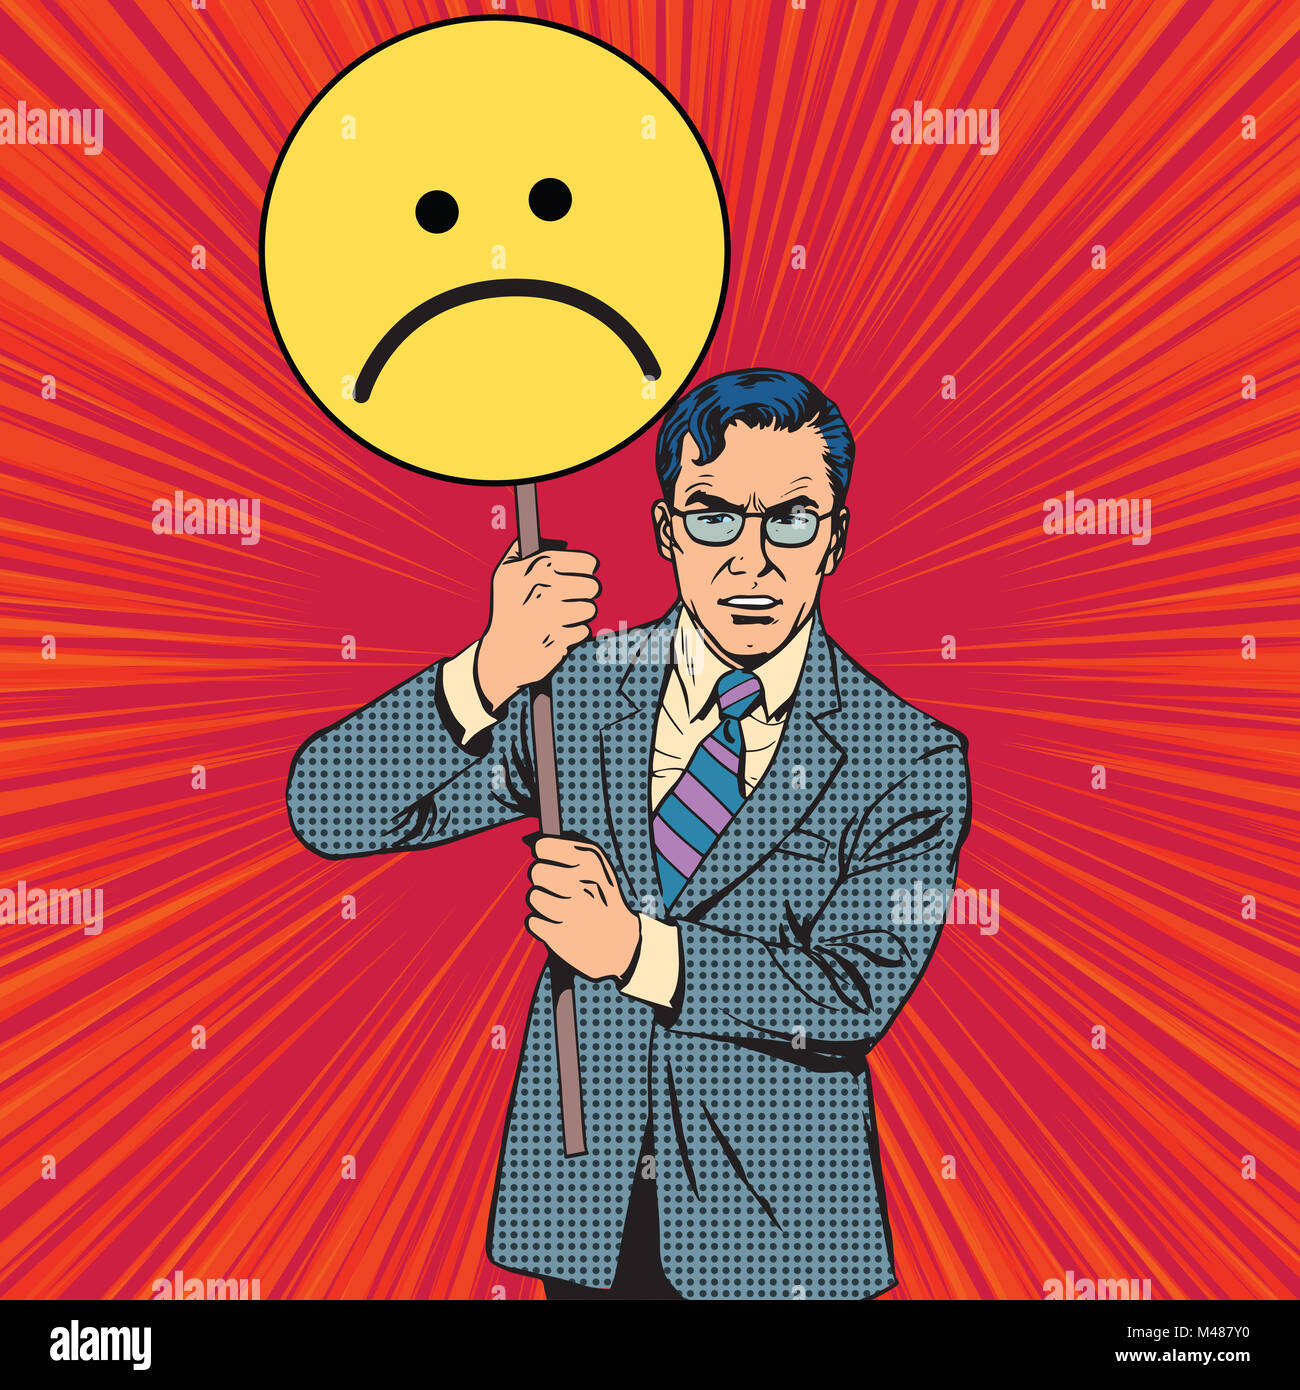 Policy protester poster sad emoticon - Stock Image